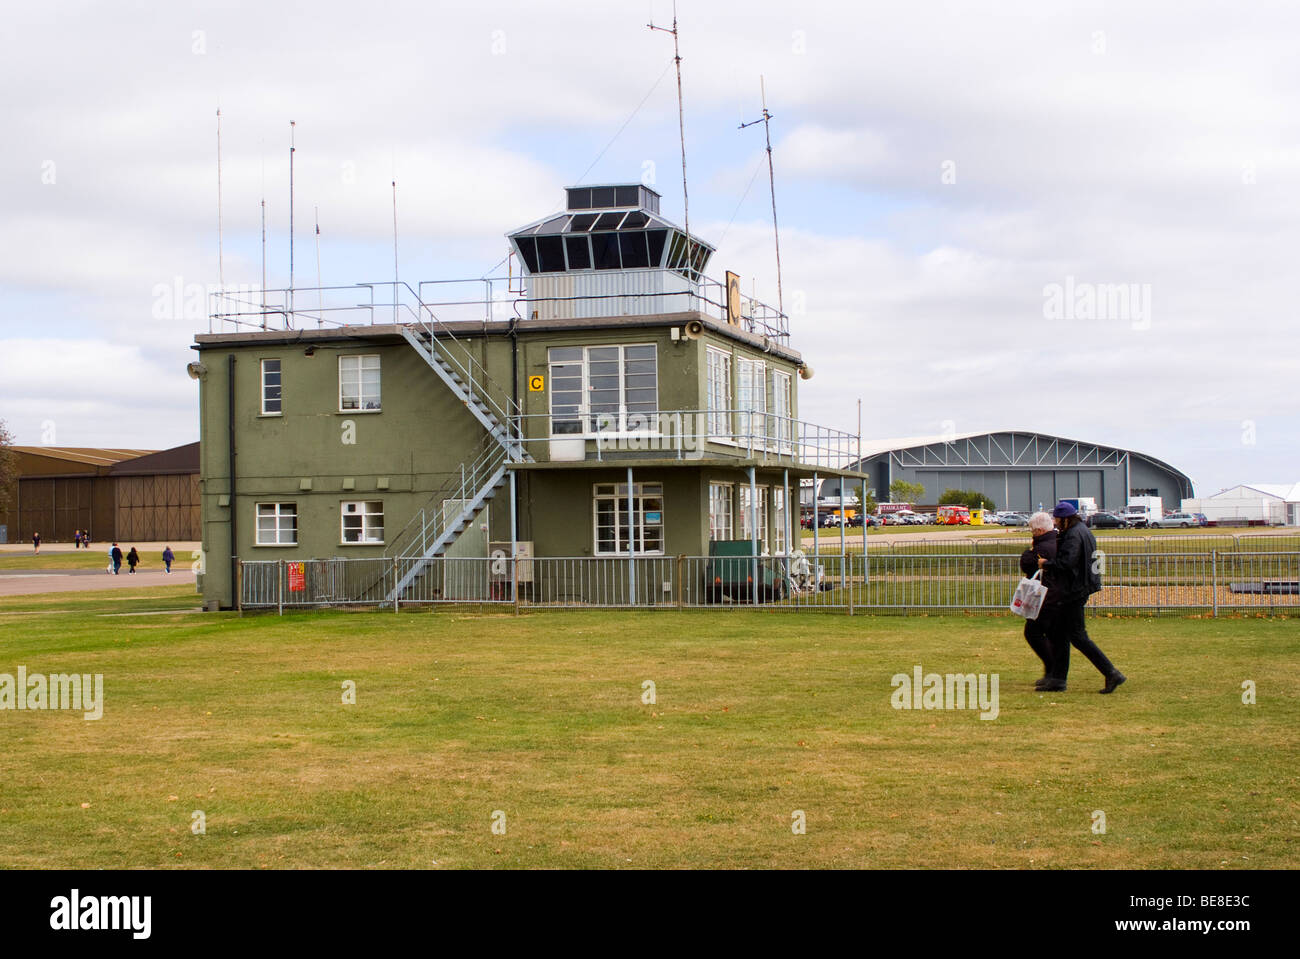 The Control Tower with Aircraft Hangars Behind at Duxford Aerodrome IWM Cambridgeshire England United Kingdom UK - Stock Image